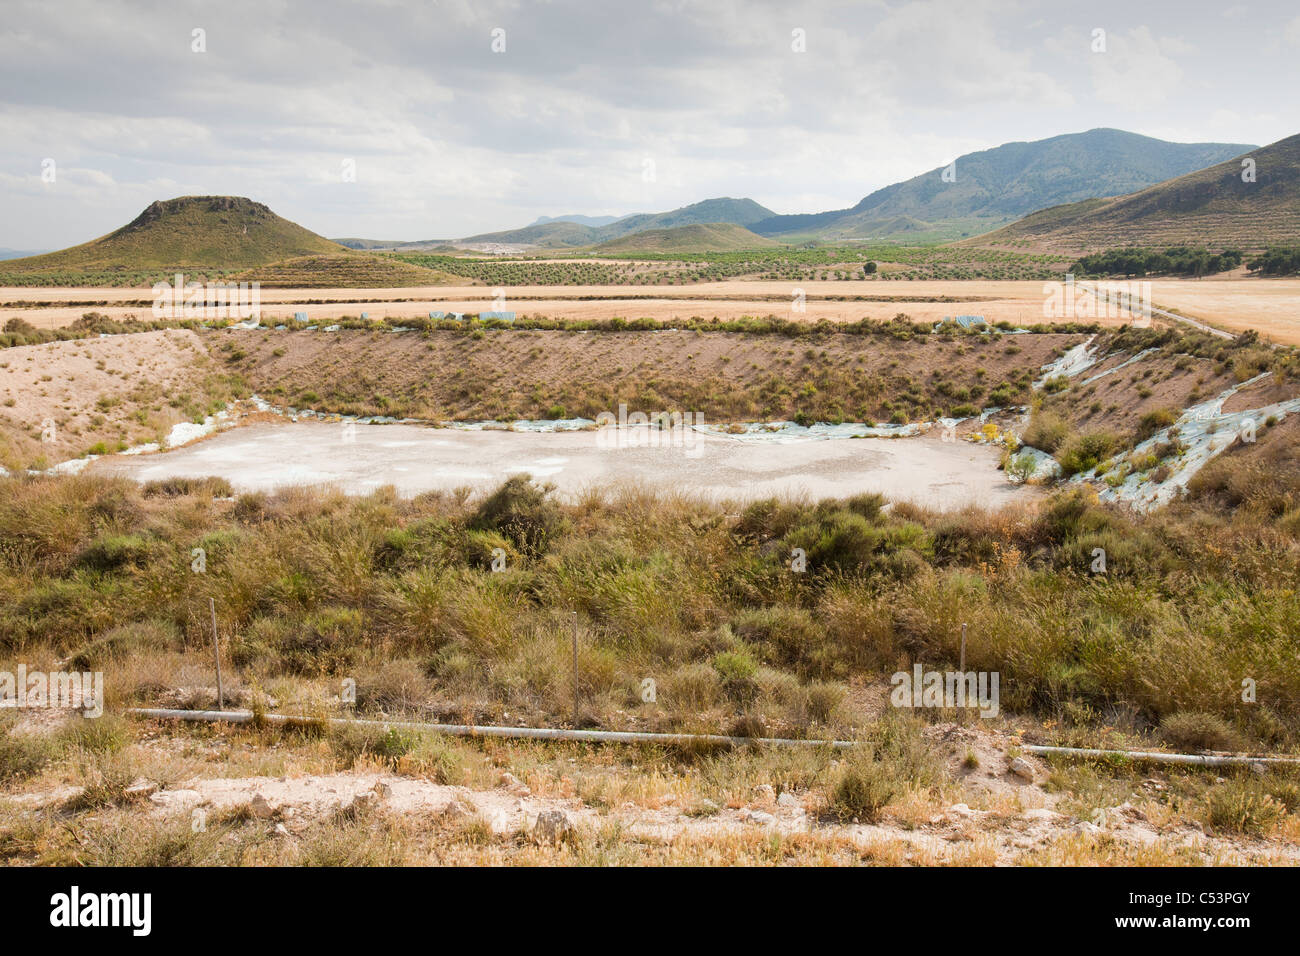 A farmers watering hole completely dried up near Lorca, in Murcia, Spain. - Stock Image